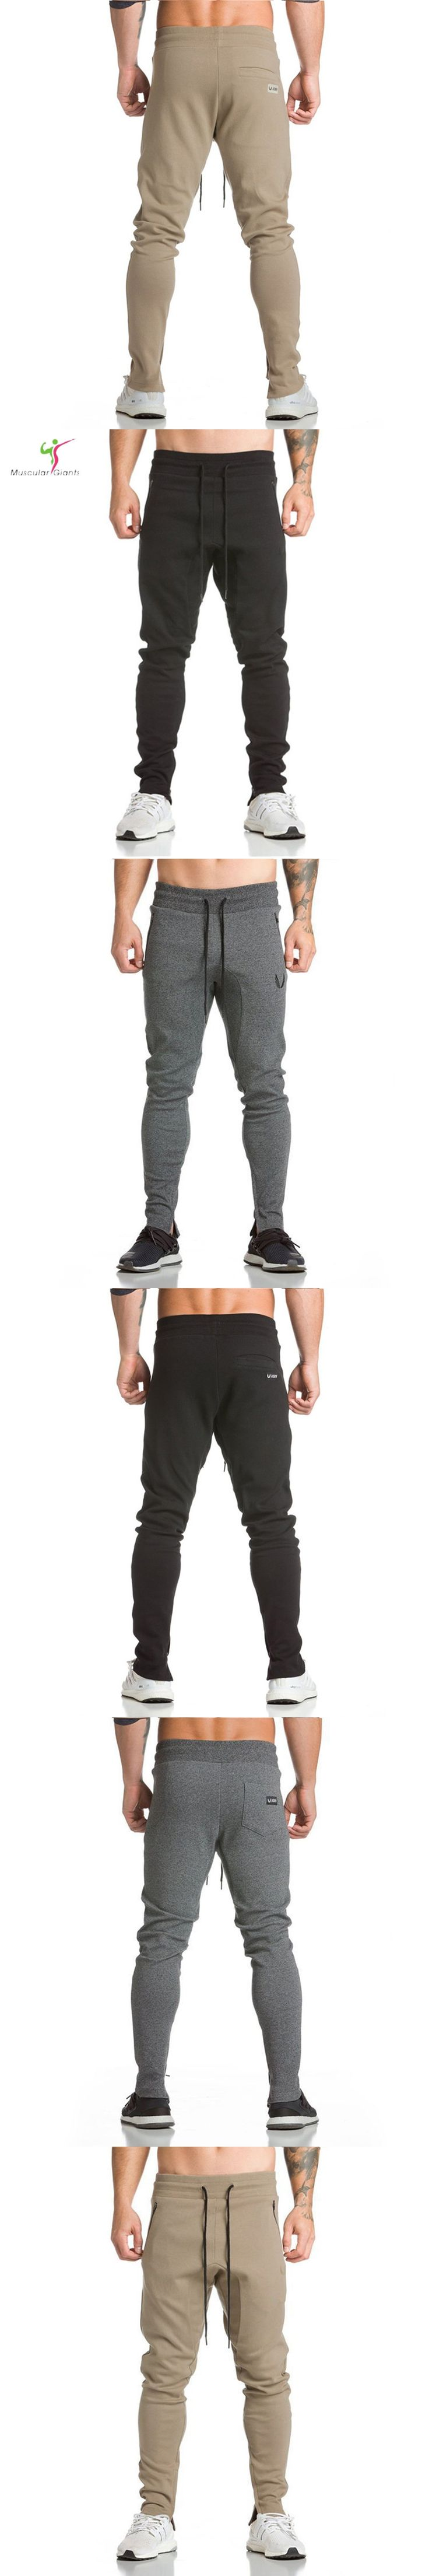 2017 New Fashion Men's GASP&GOLDS Pants, Male Fitness Workout Pants,Sweatpants Trousers Jogger Pants M-XXL